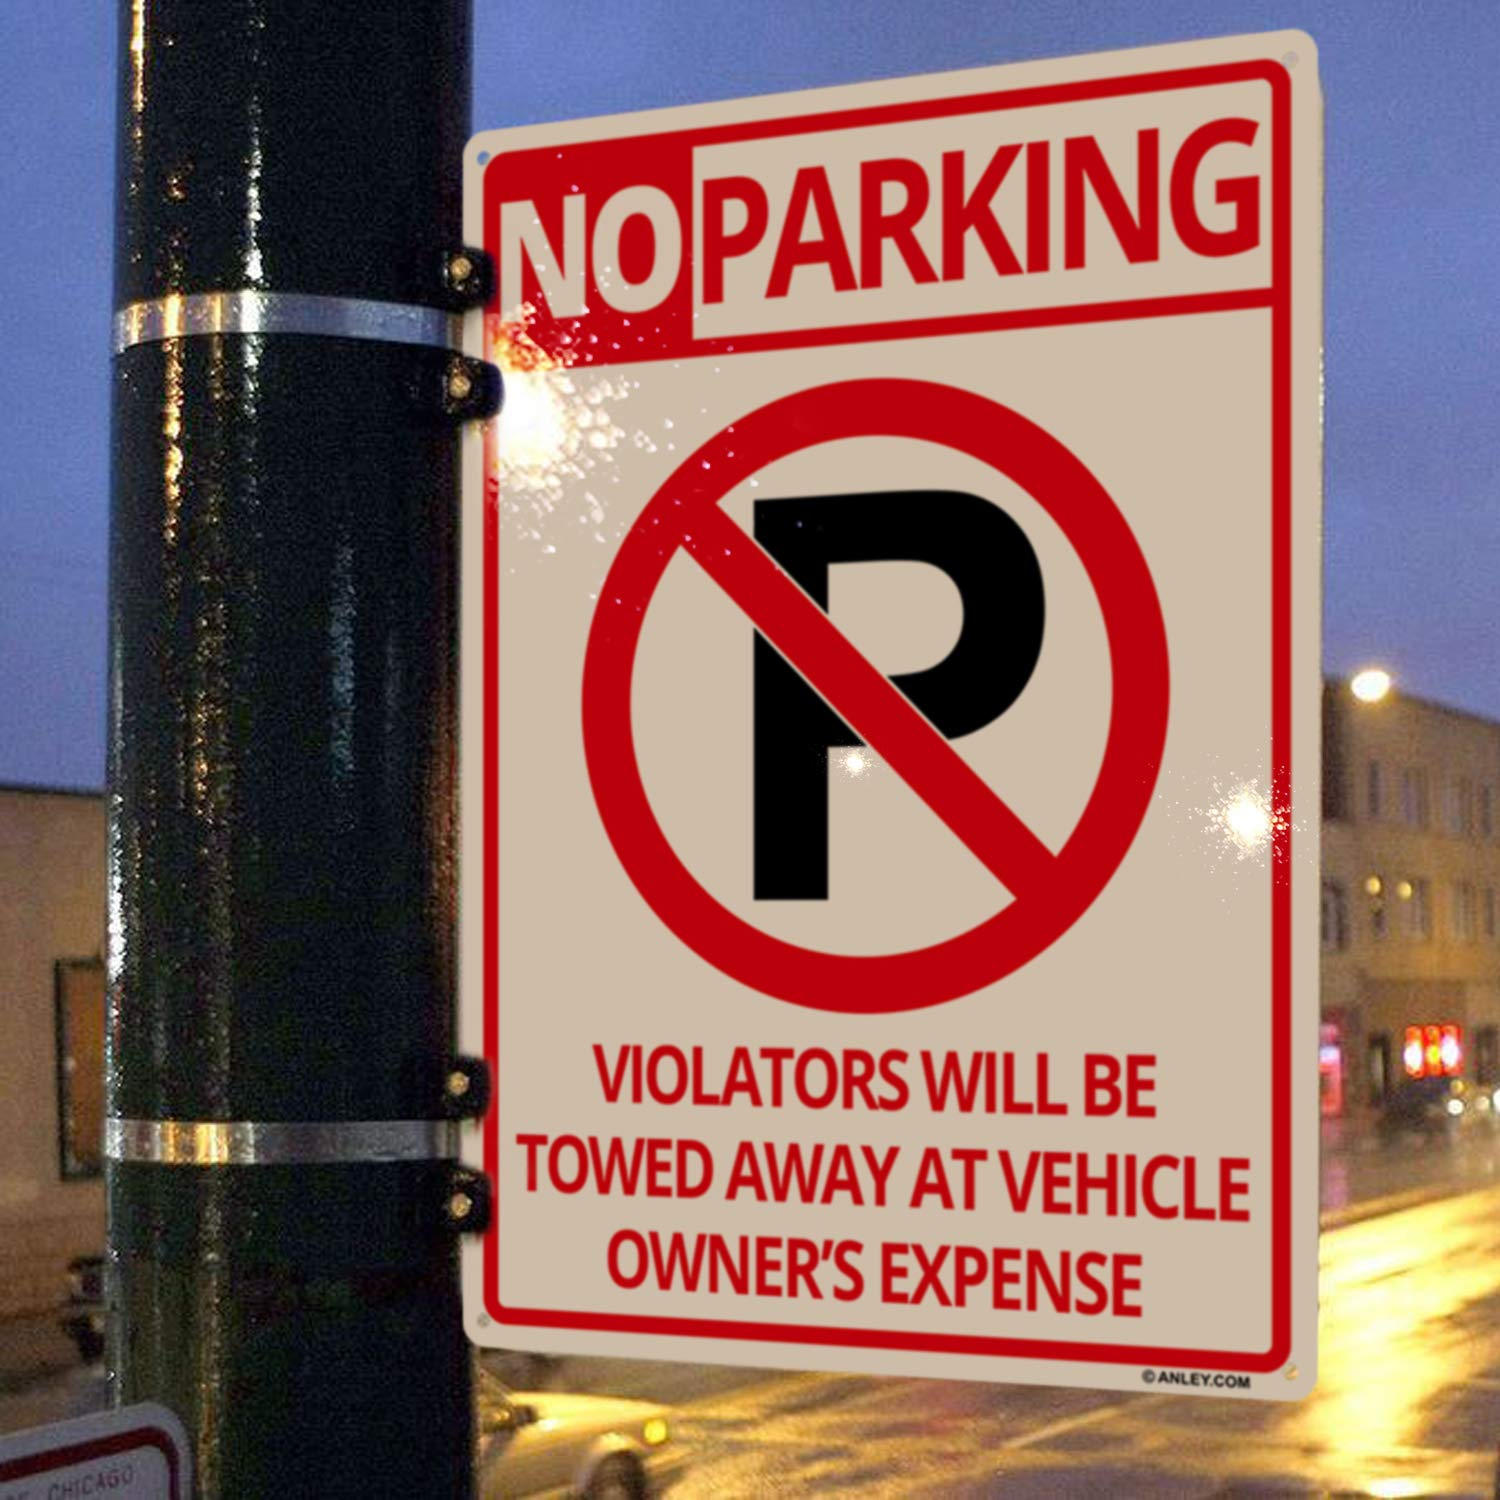 Easy Mounting ANLEY No Parking Sign 14 X 10 in Violators Will Be Towed Away at Vehicle Owners Expense Metal Warning Sign Outdoor Use 40 Mil Thick Rust-Free Weatherproof Aluminum